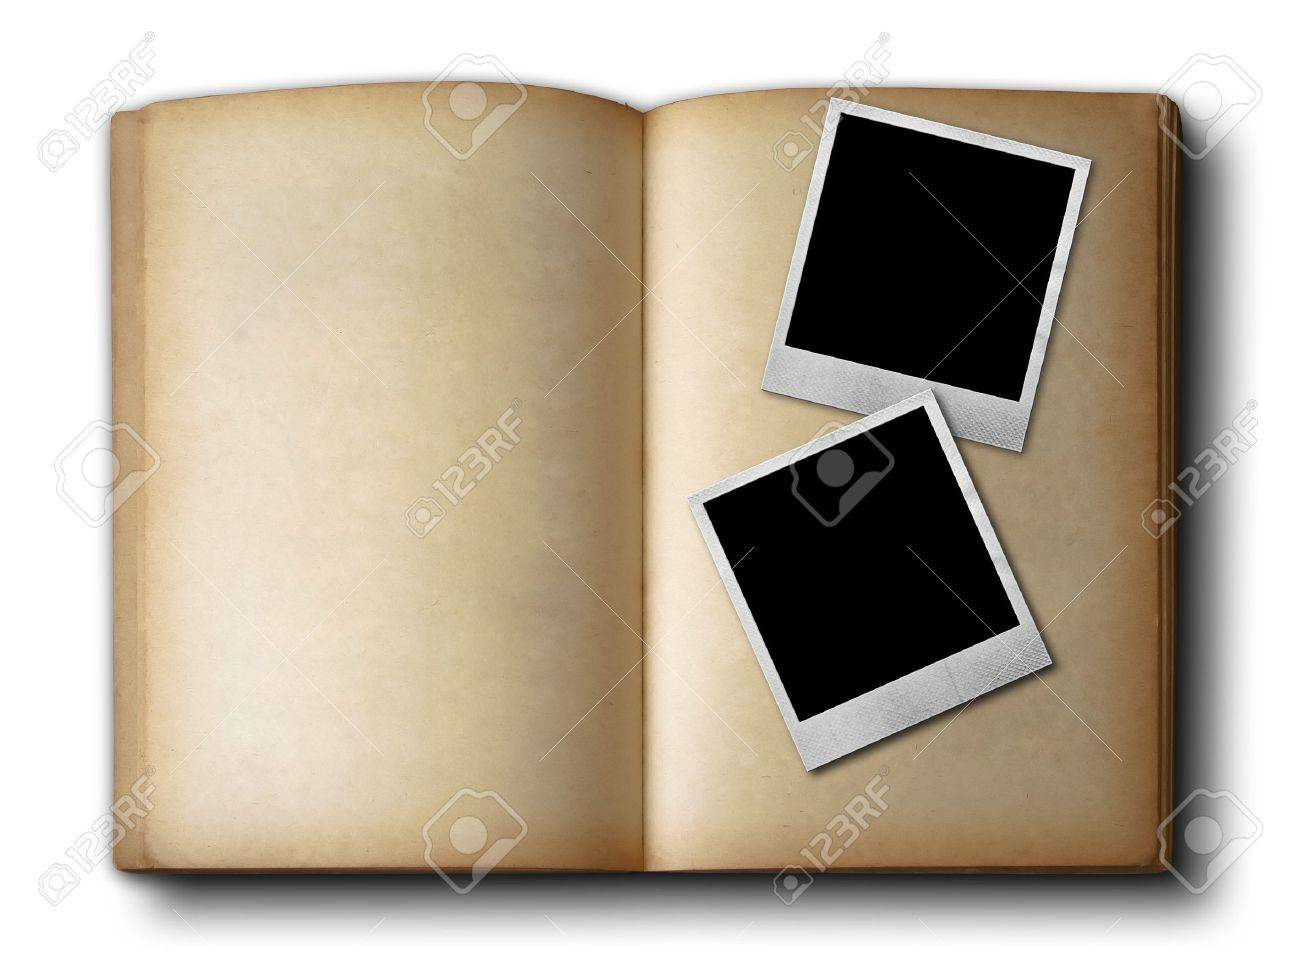 Two Photo Frames On Old Open Book On White Background Stock Photo ...